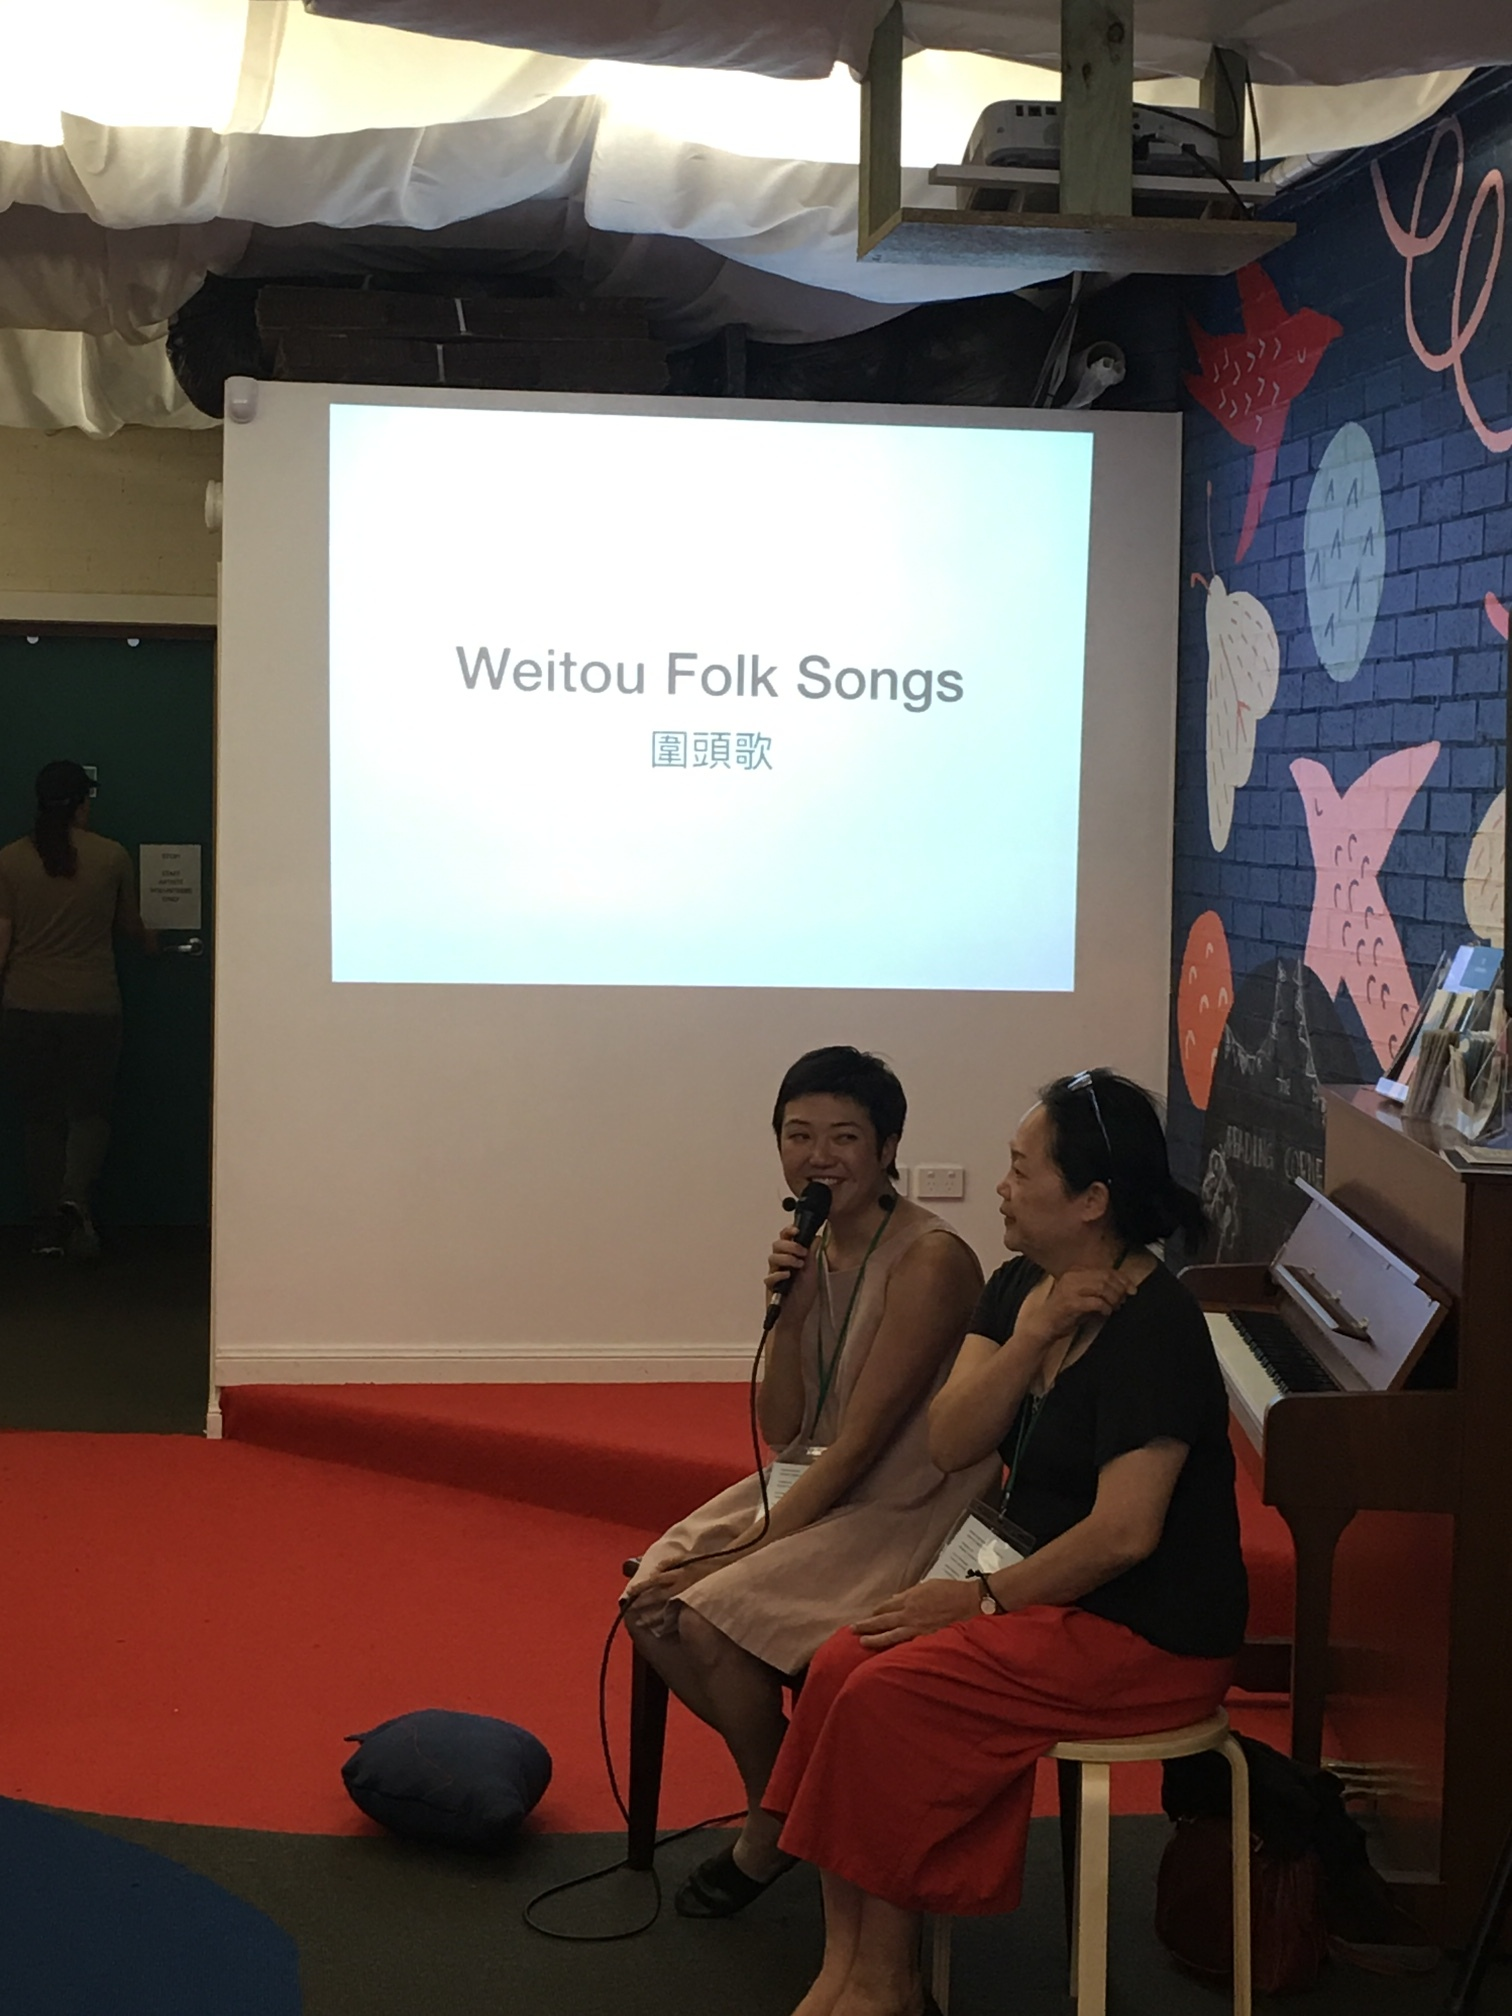 Rainbow Chan and her mother teaching Weitou Folk Songs at IN OTHER WORDS Festival, February 2018